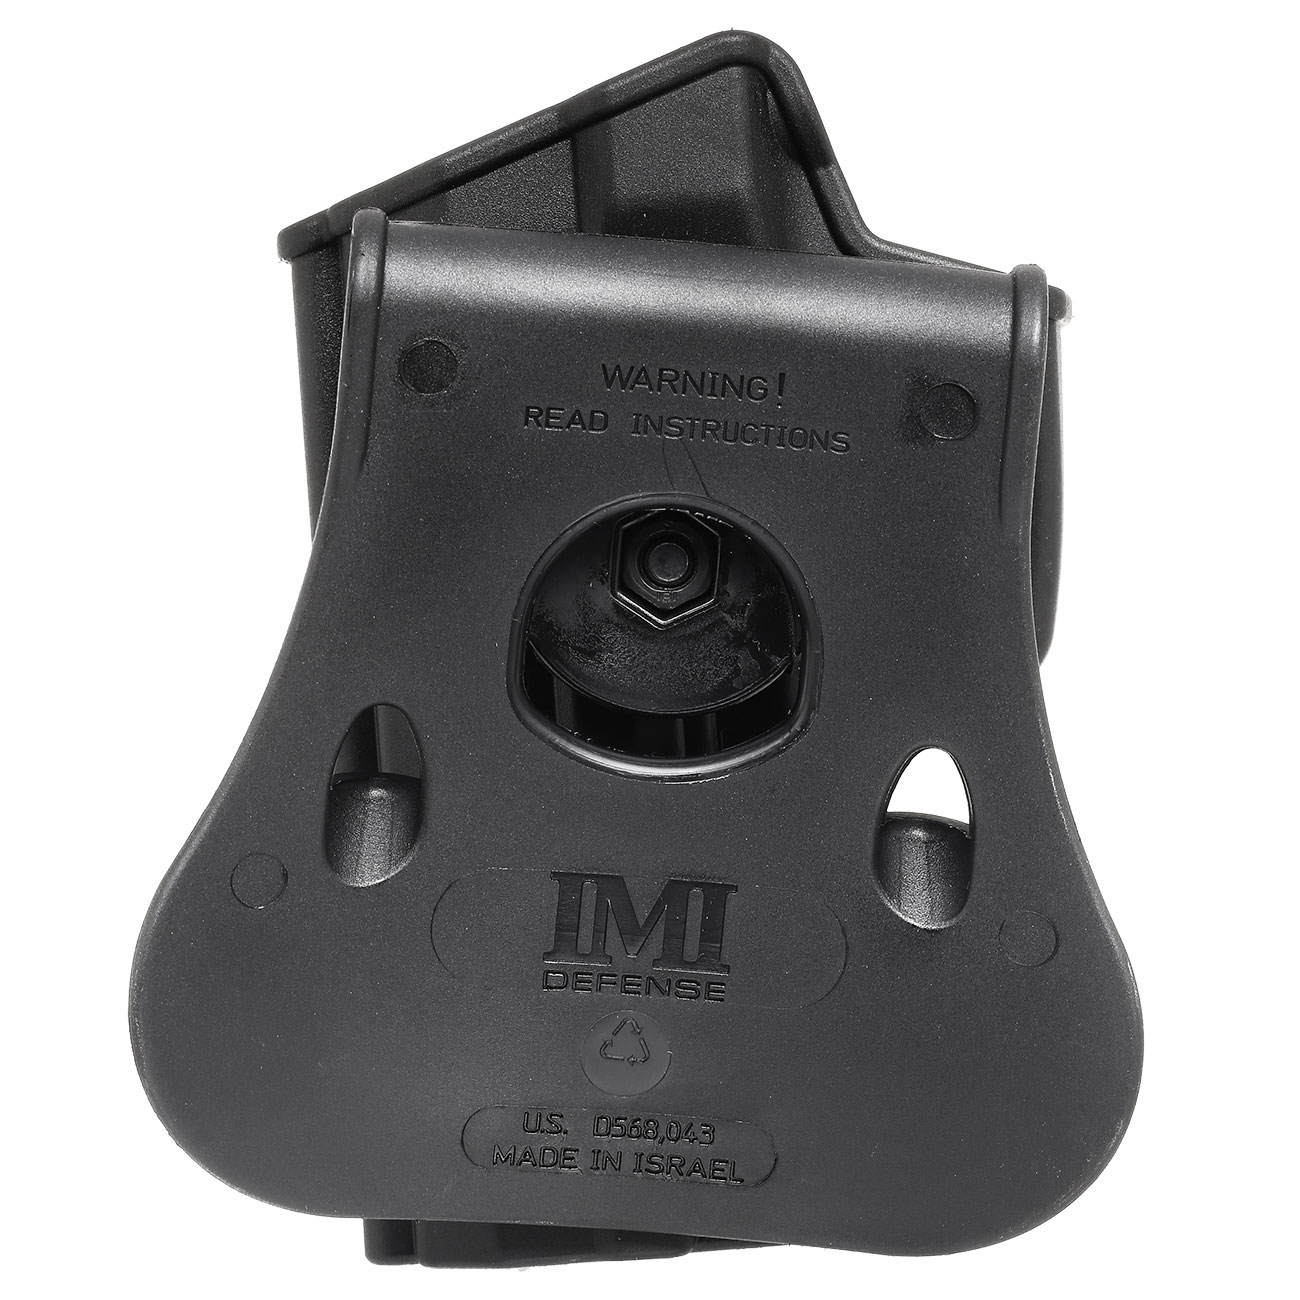 IMI Defense Level 2 Holster Kunststoff Paddle für H&K USP / P8 9mm schwarz 4